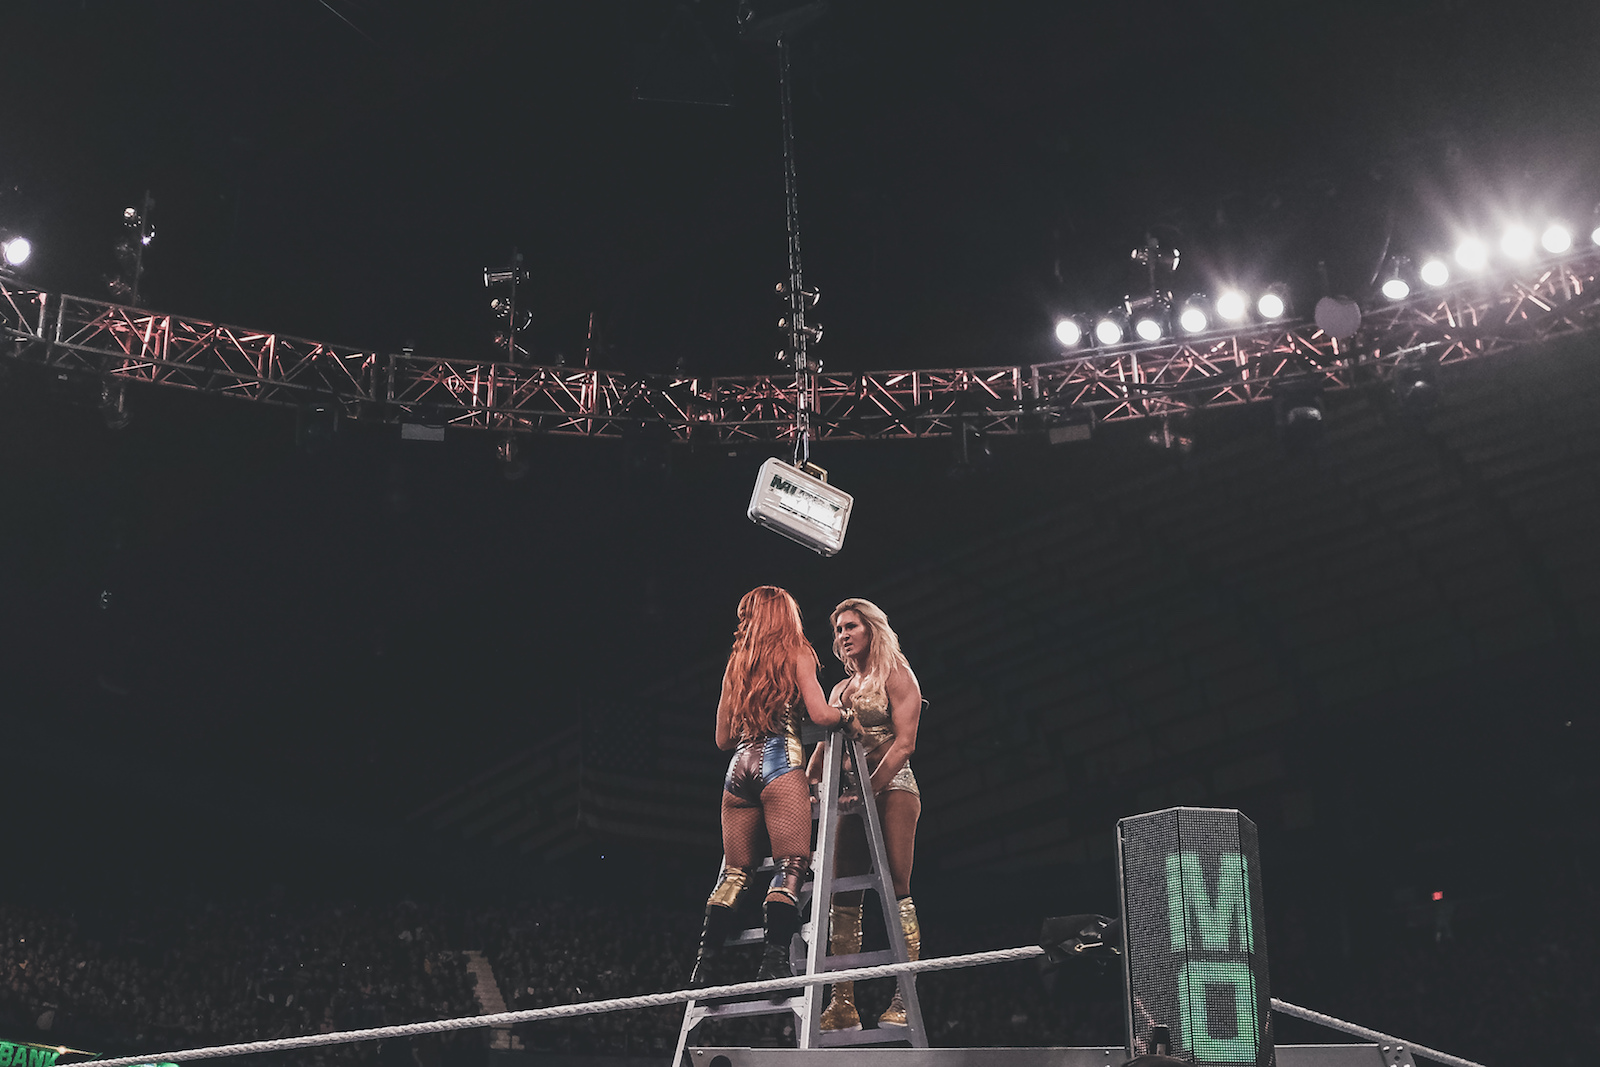 WWE Superstars Becky Lynch and Charlotte Flair meet at the top in Chicago, IL.